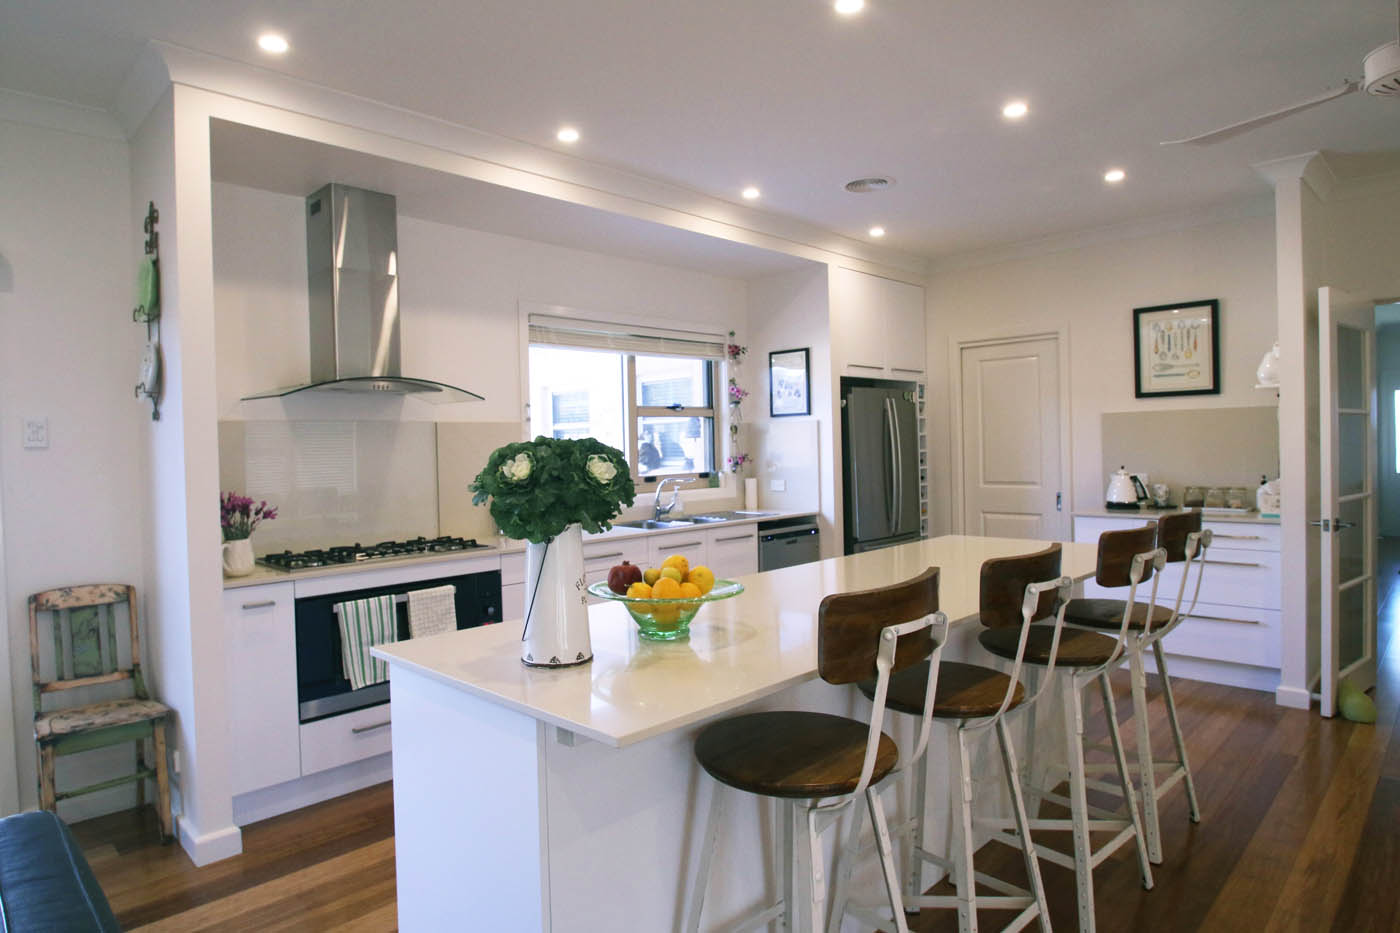 Rustic stools in clean white kitchen